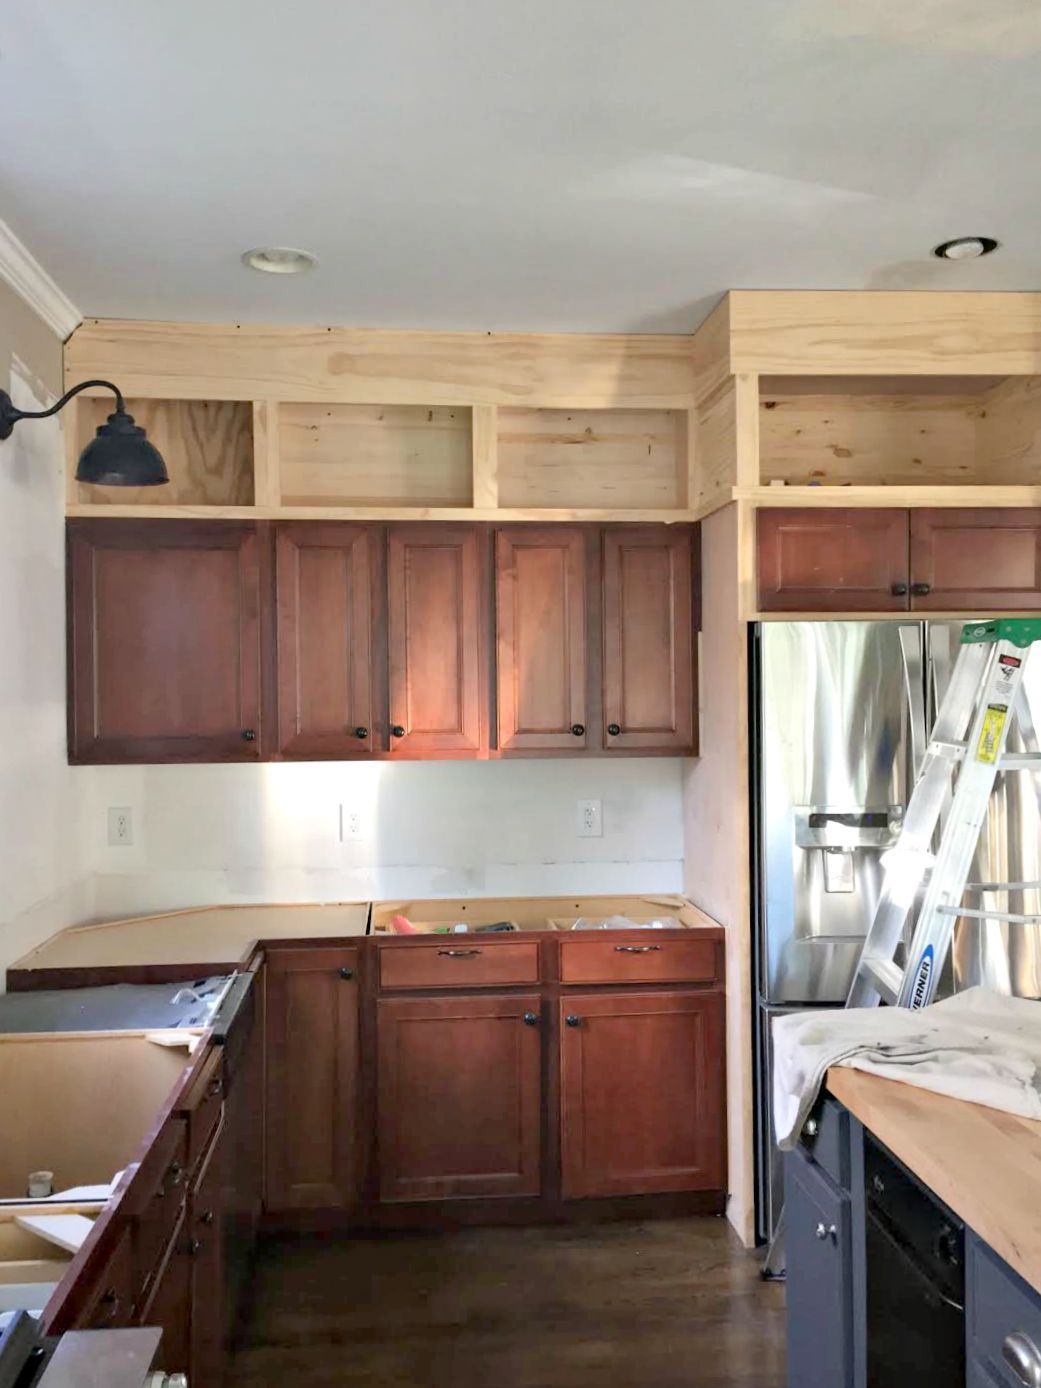 Kitchen Cabinets To Ceiling Building cabinets up to the ceiling | Kitchen cabinets to ceiling